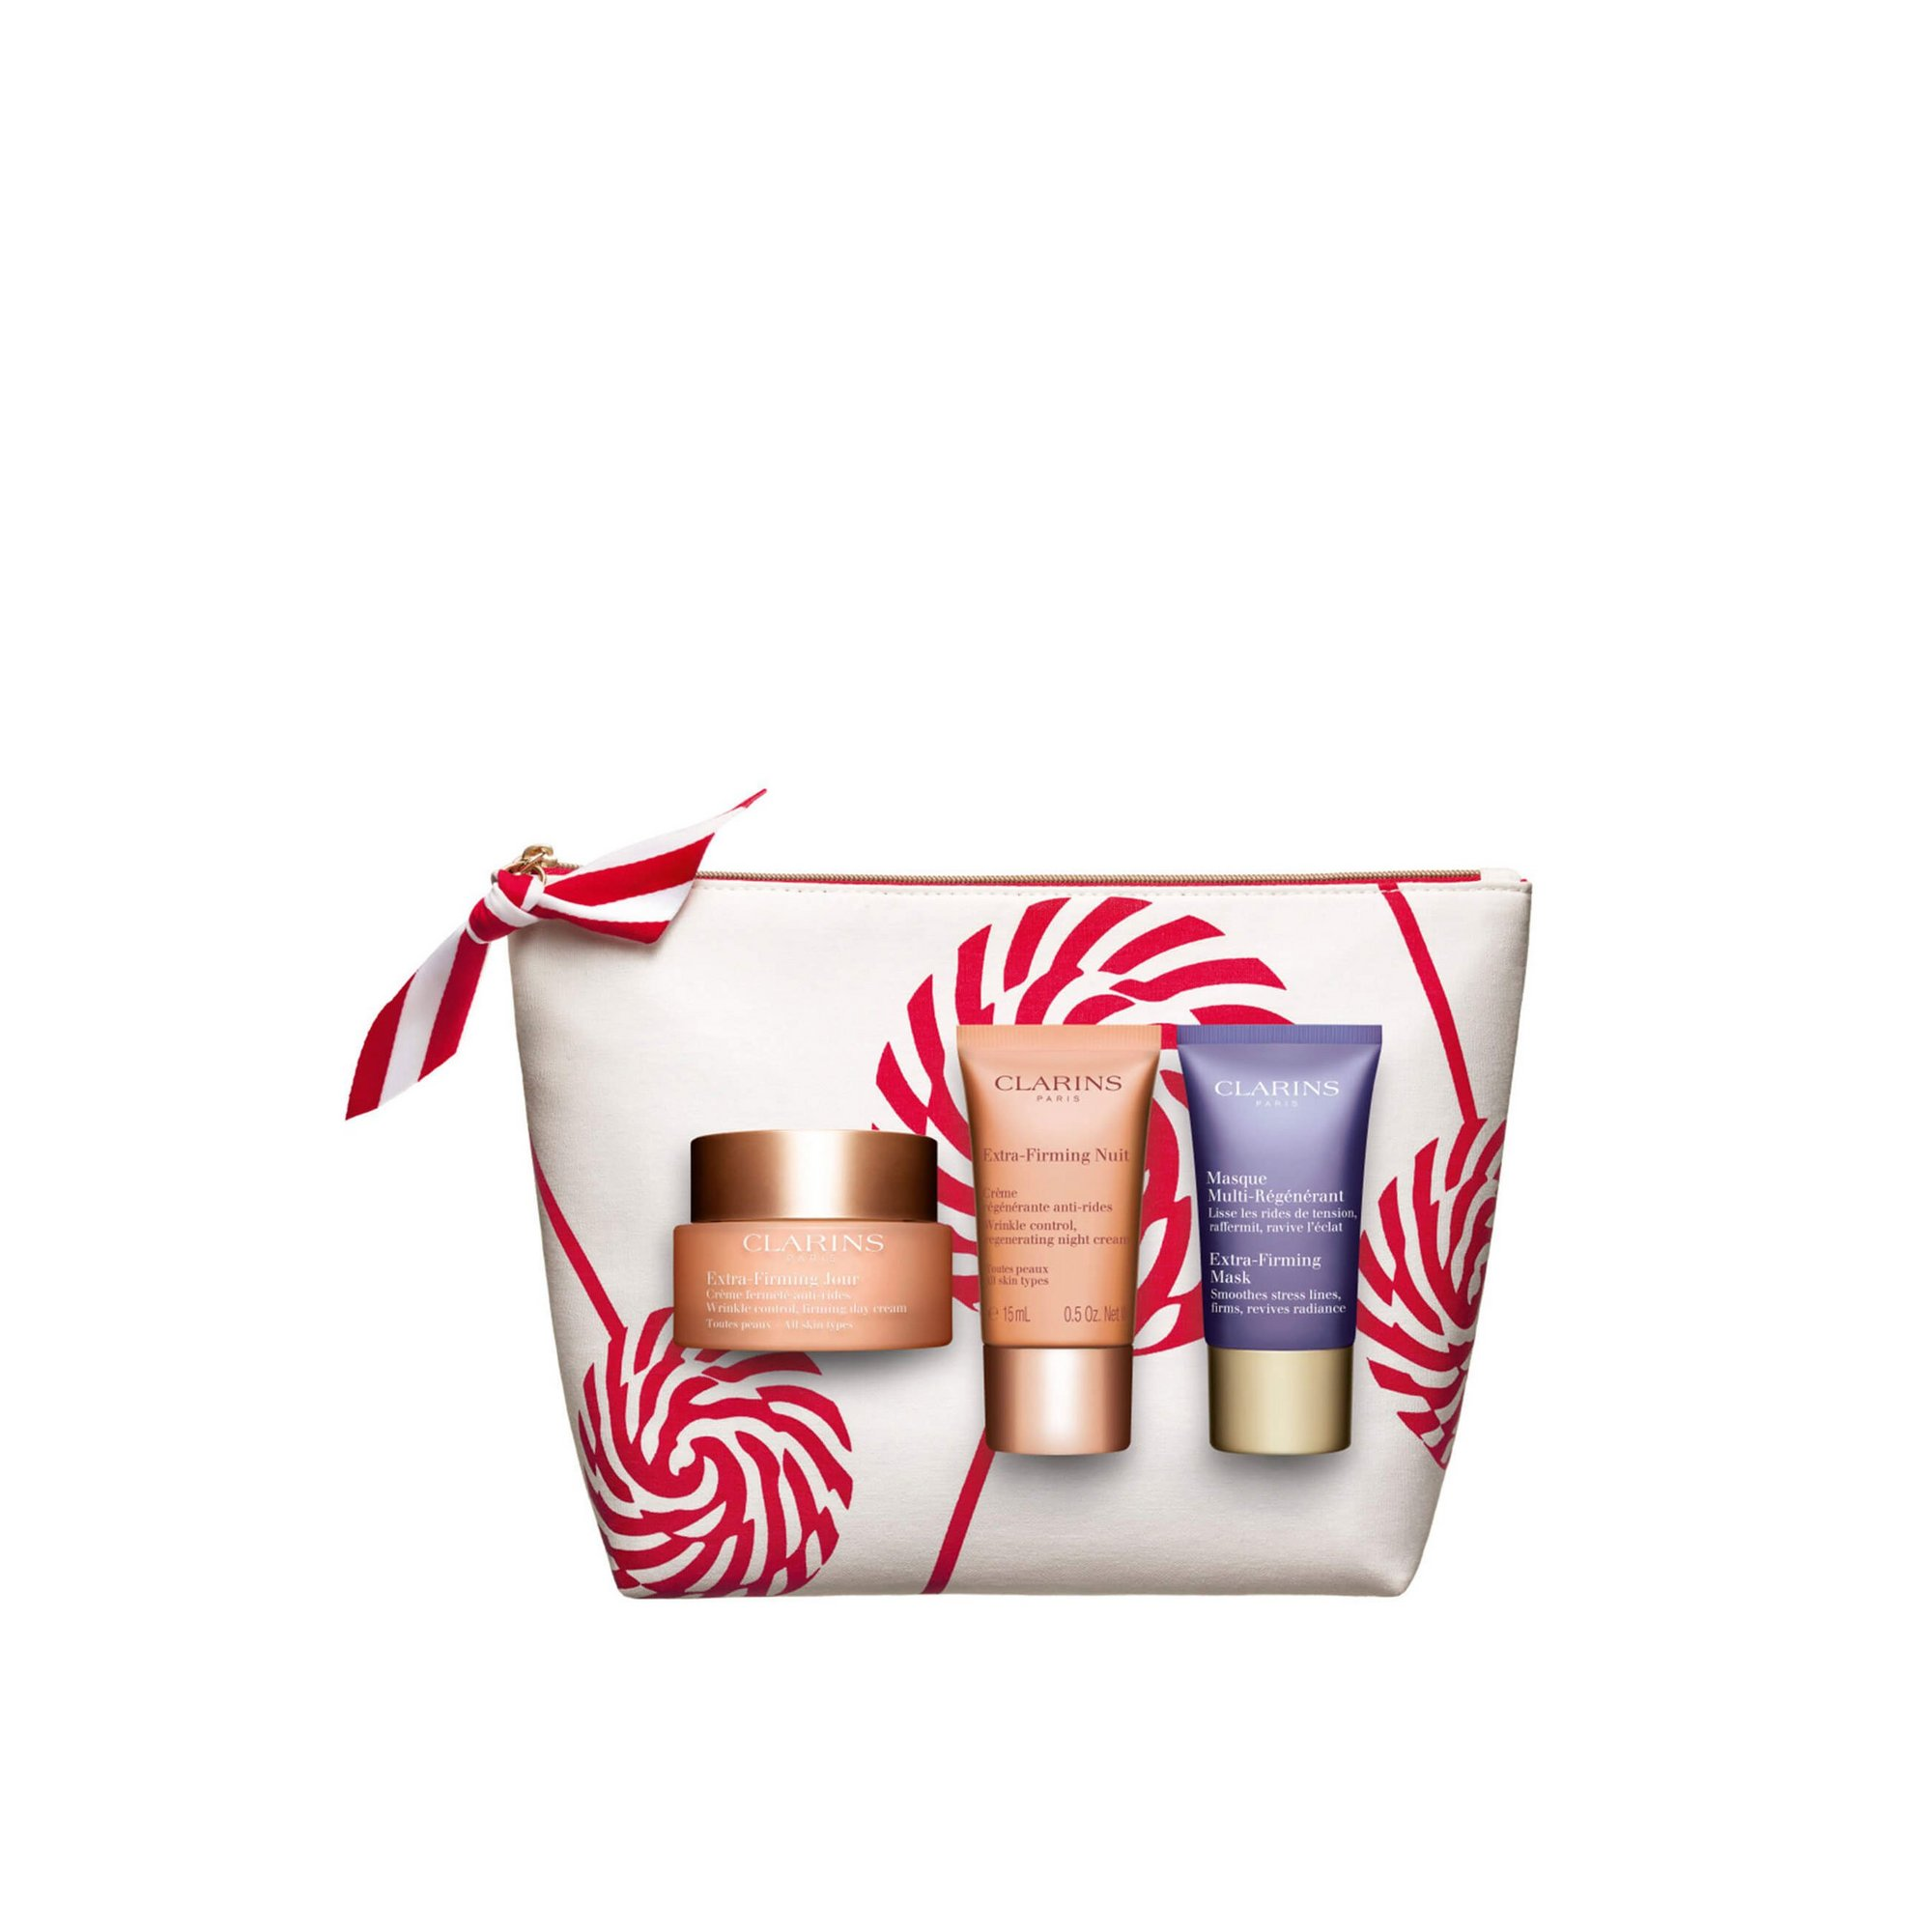 Image of Clarins Extra Firming Gift Set